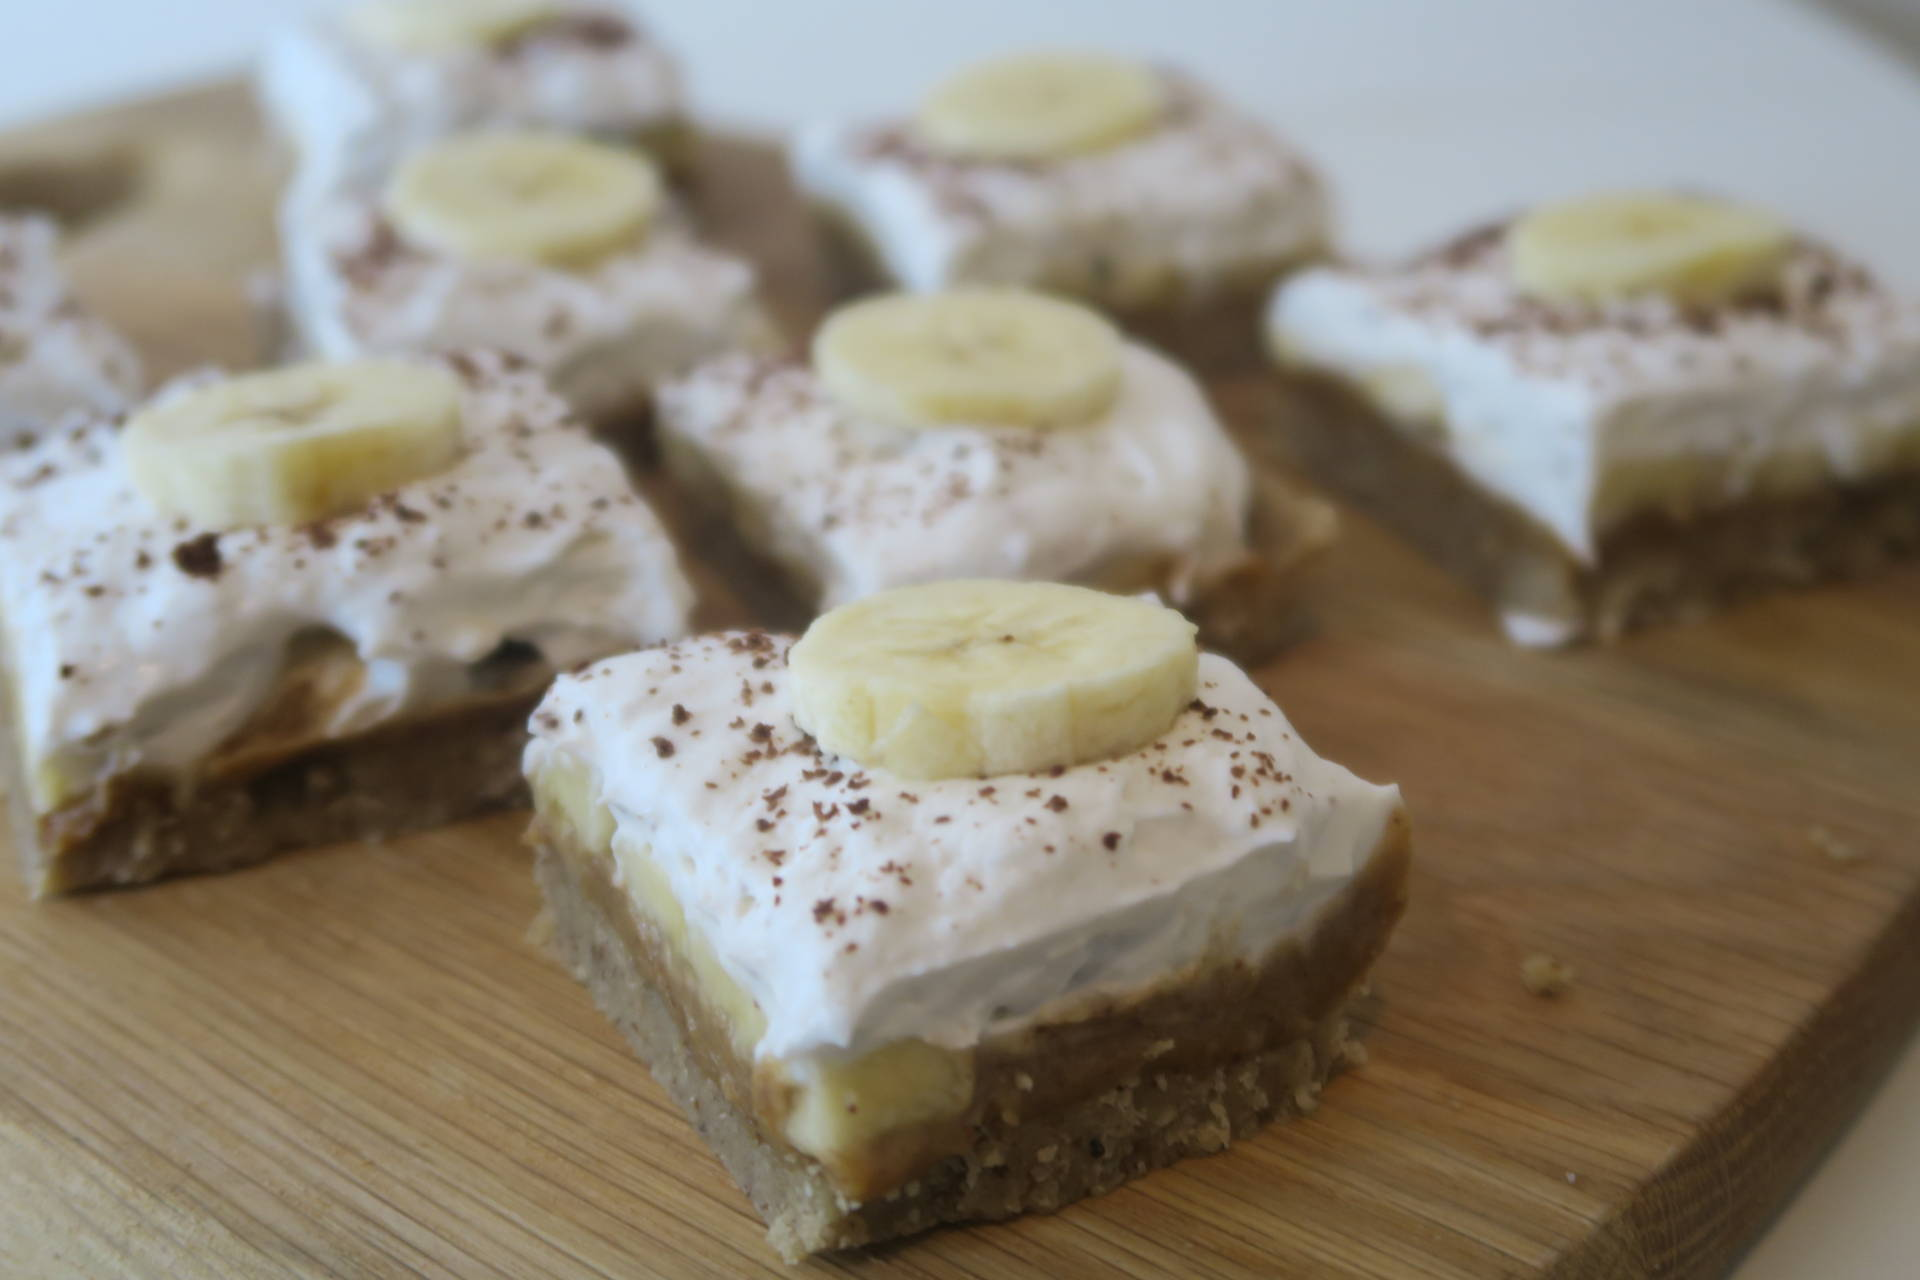 RECIPE: Healthy Banoffee Pie (Gluten Free, Vegan, Refined Sugar Free, Dairy Free)